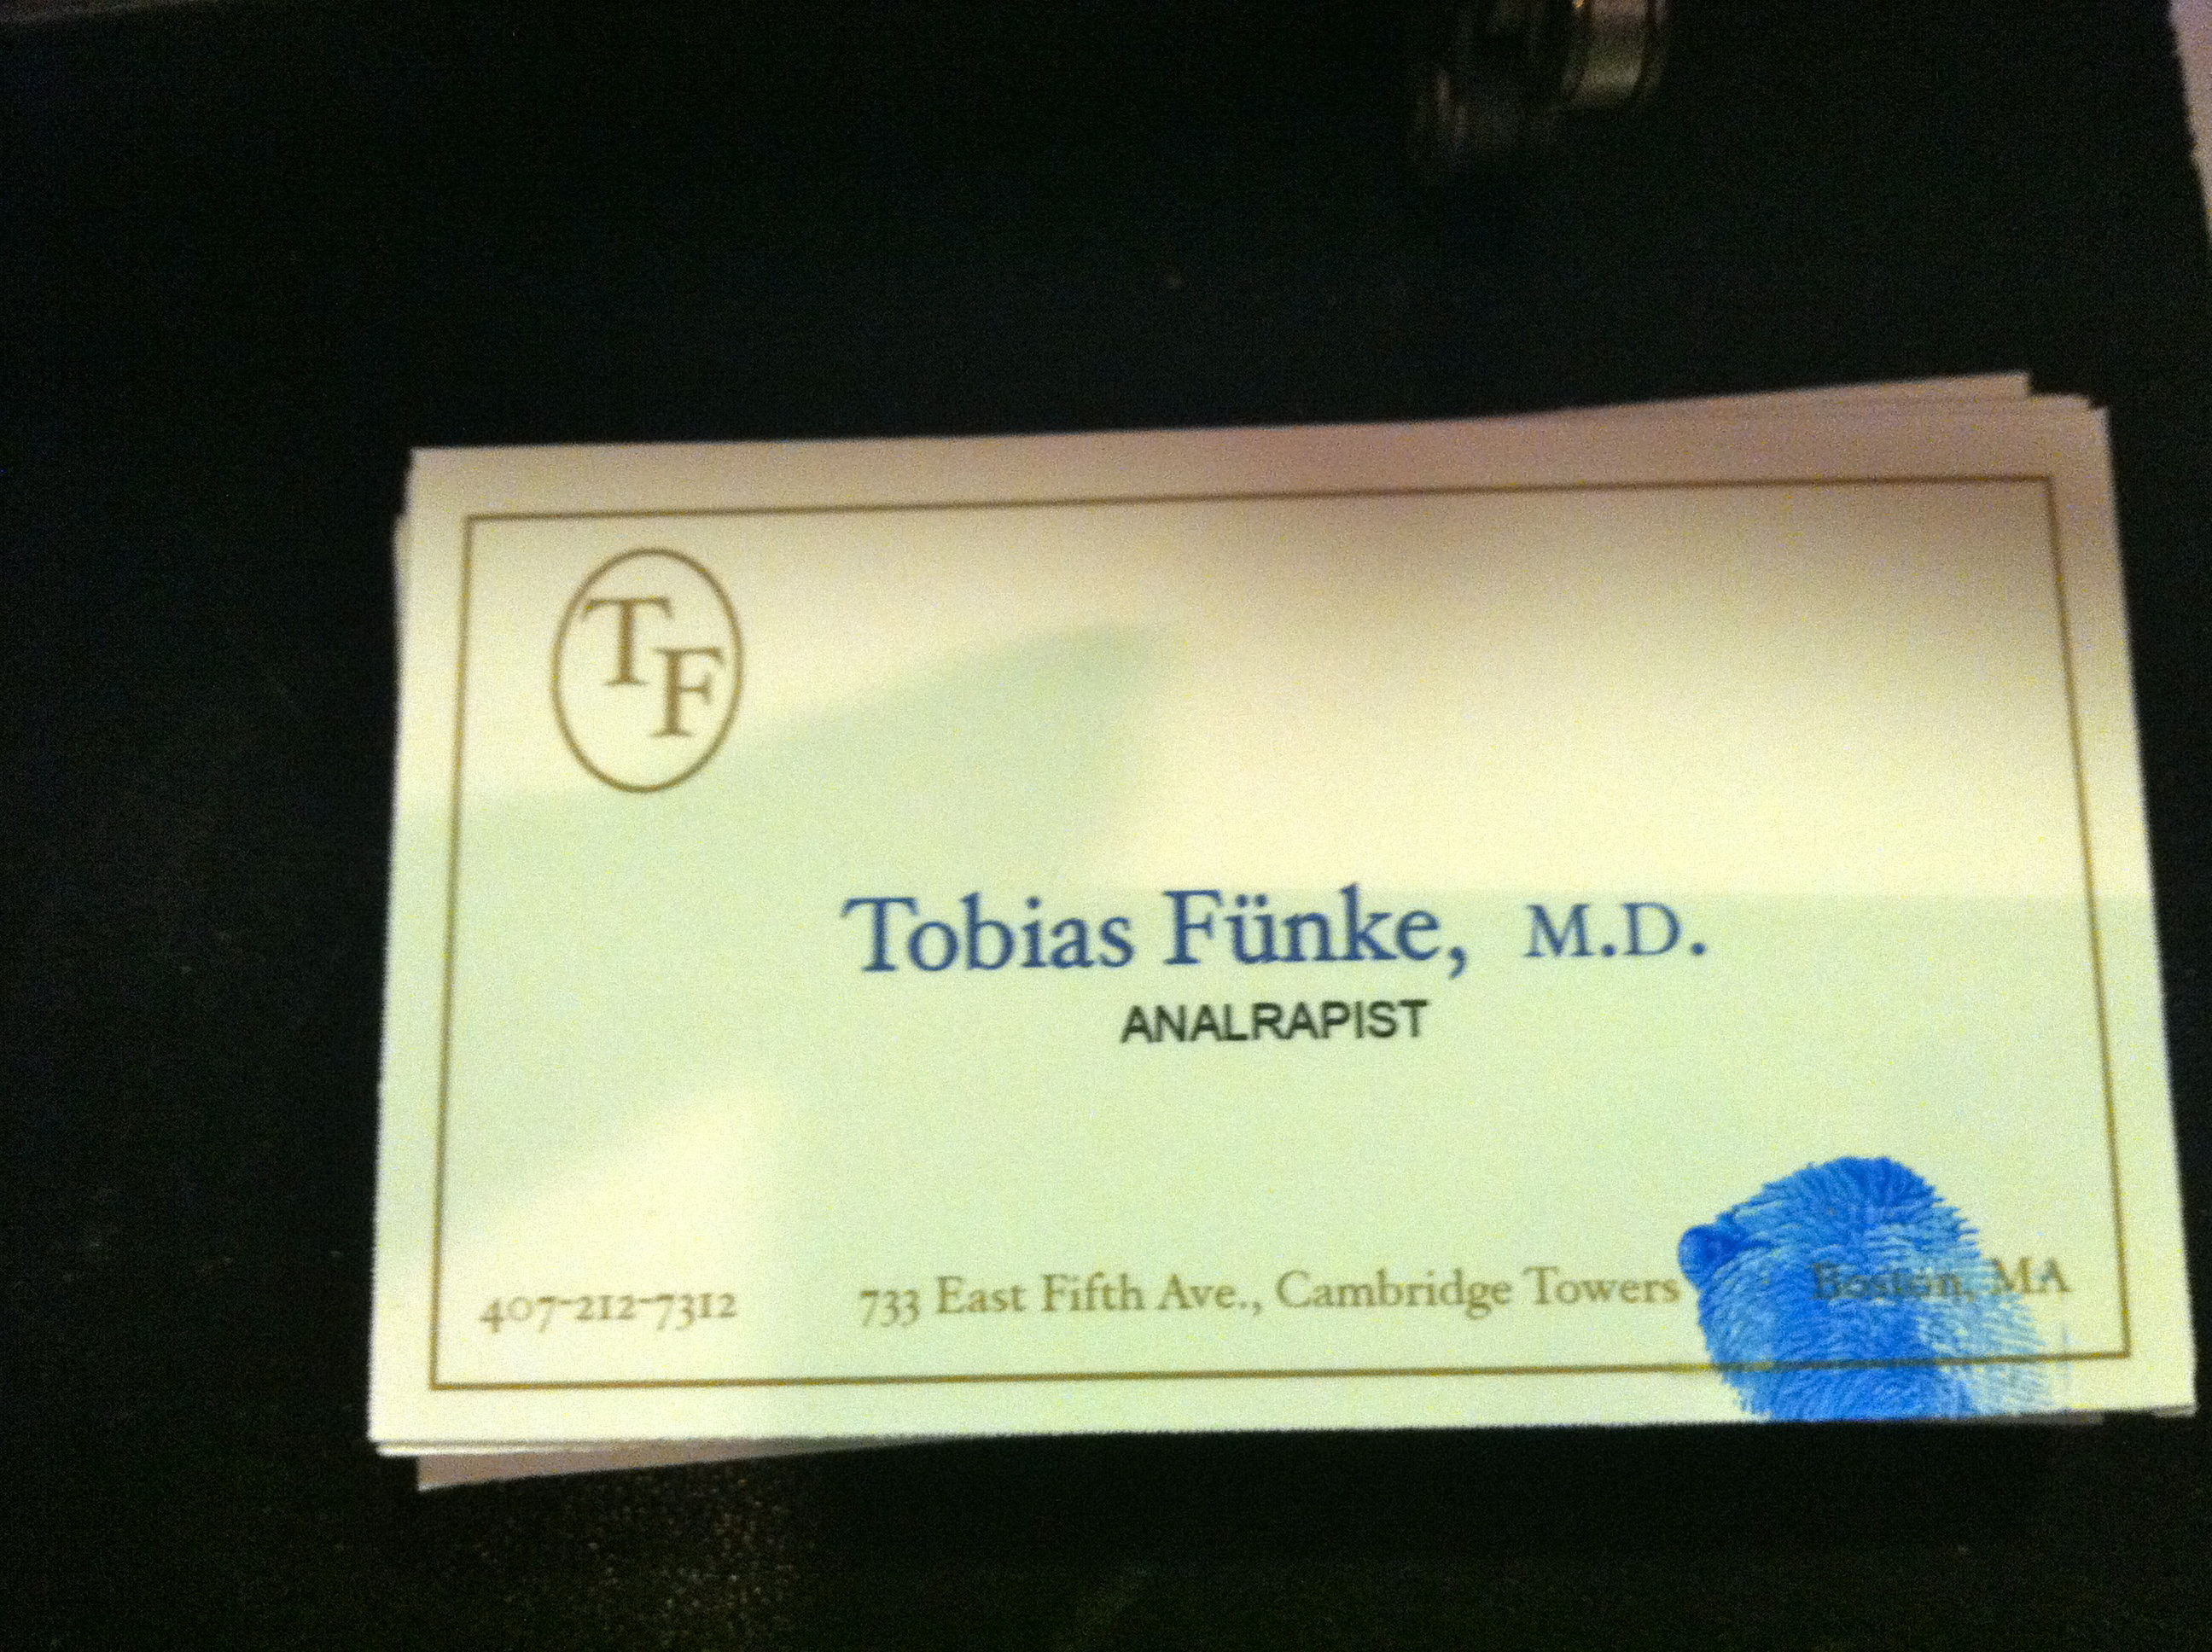 Tobias funke analrapist card apgd for Tobias business card